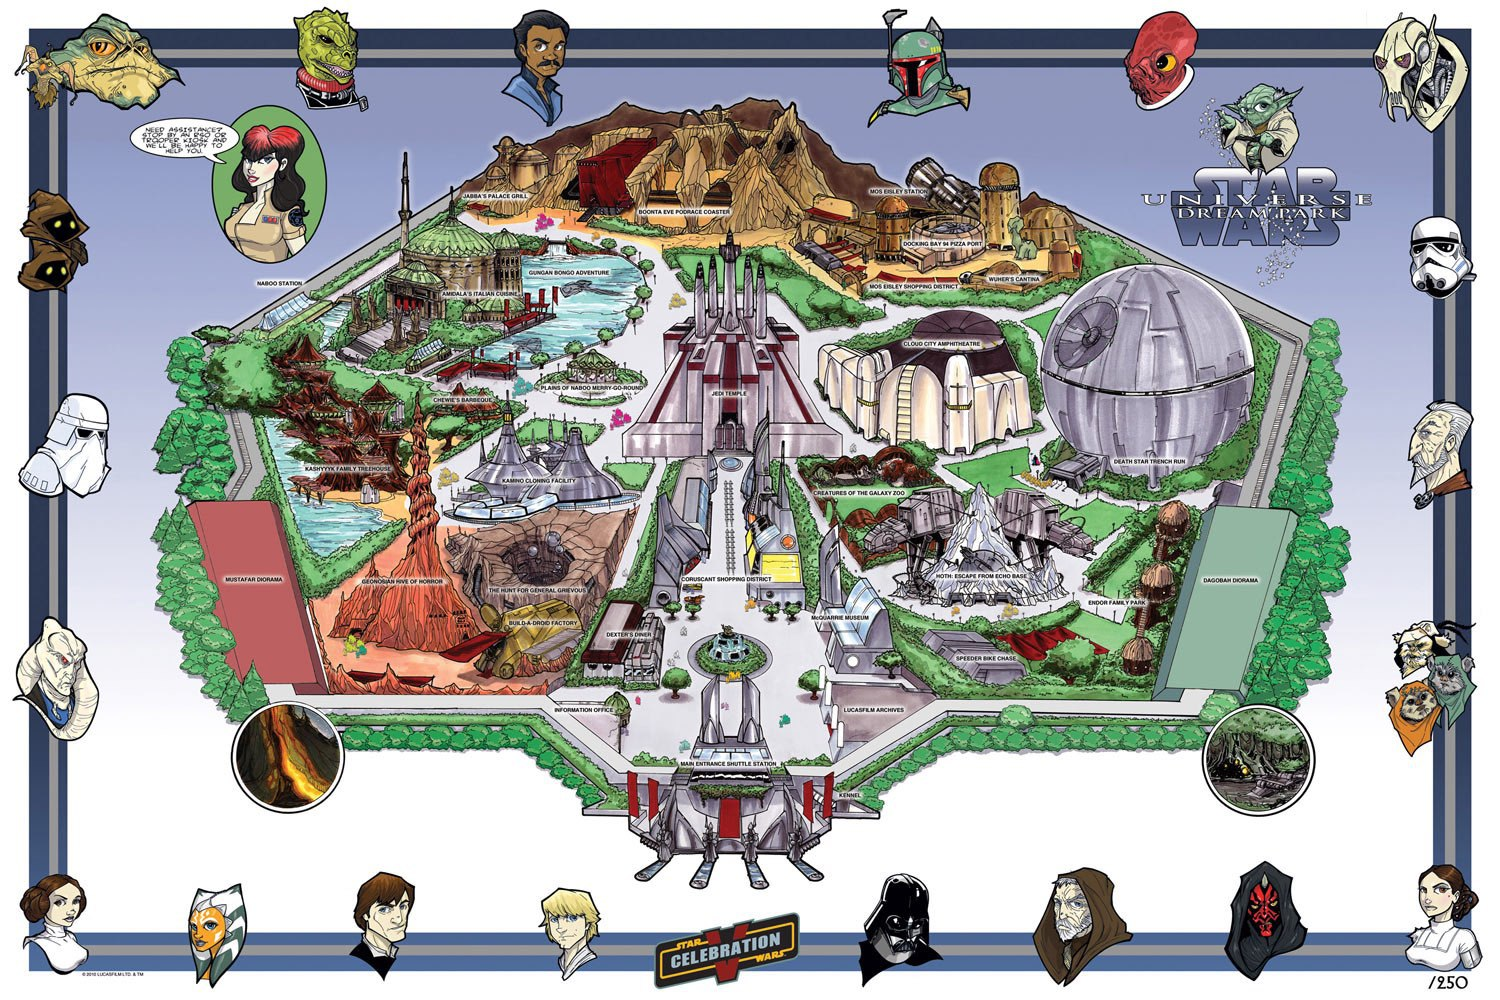 Star wars land to hit disney parks a whole new planet in the star star wars land to hit disney parks a whole new planet in the star wars universe gumiabroncs Image collections